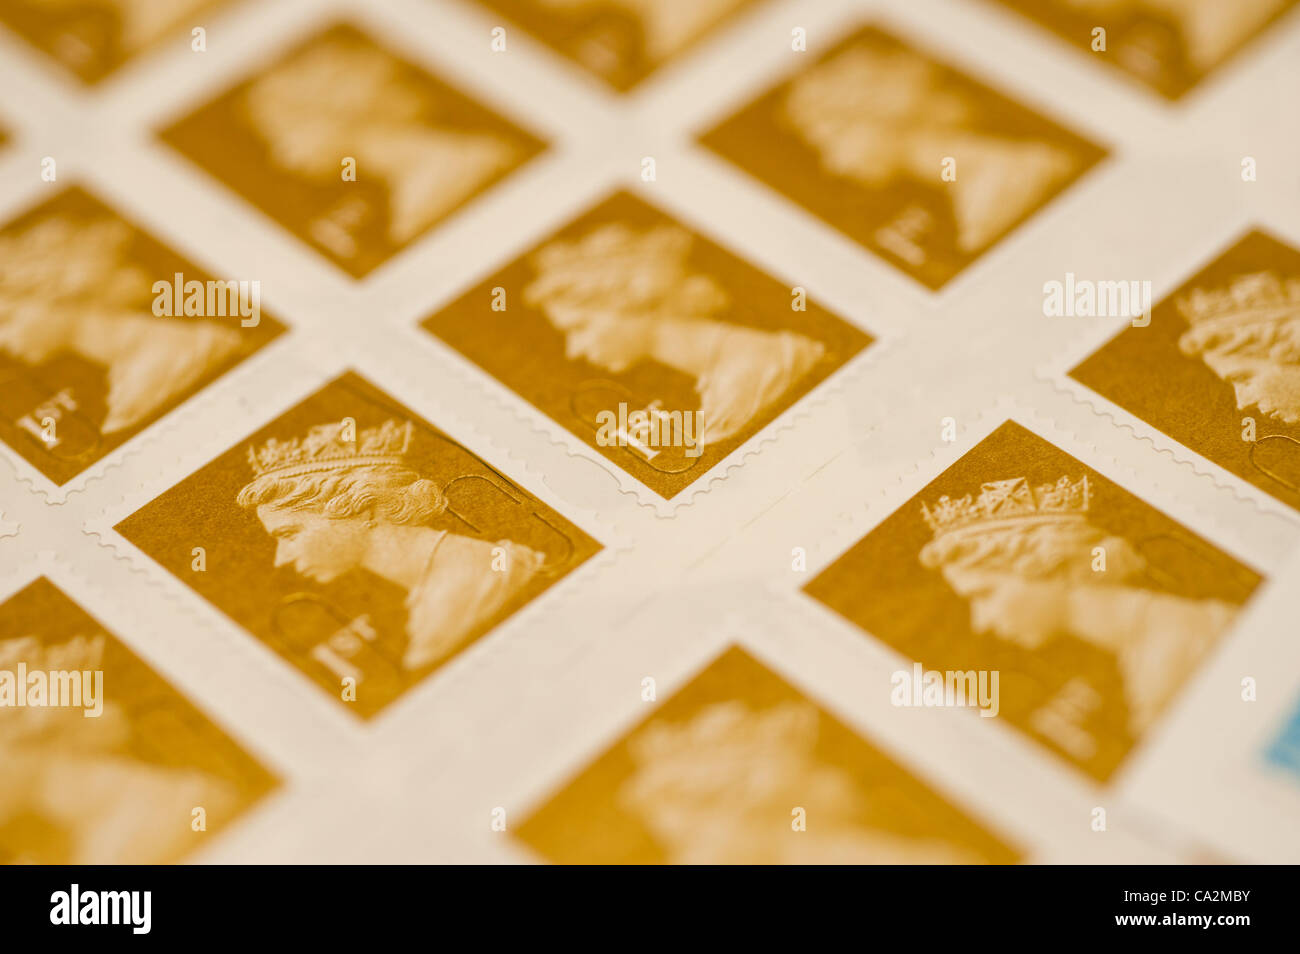 A sheet of first-class postage stamps. They will rise 30%  in price from 46p to 60p from 30 April 2012 after the - Stock Image